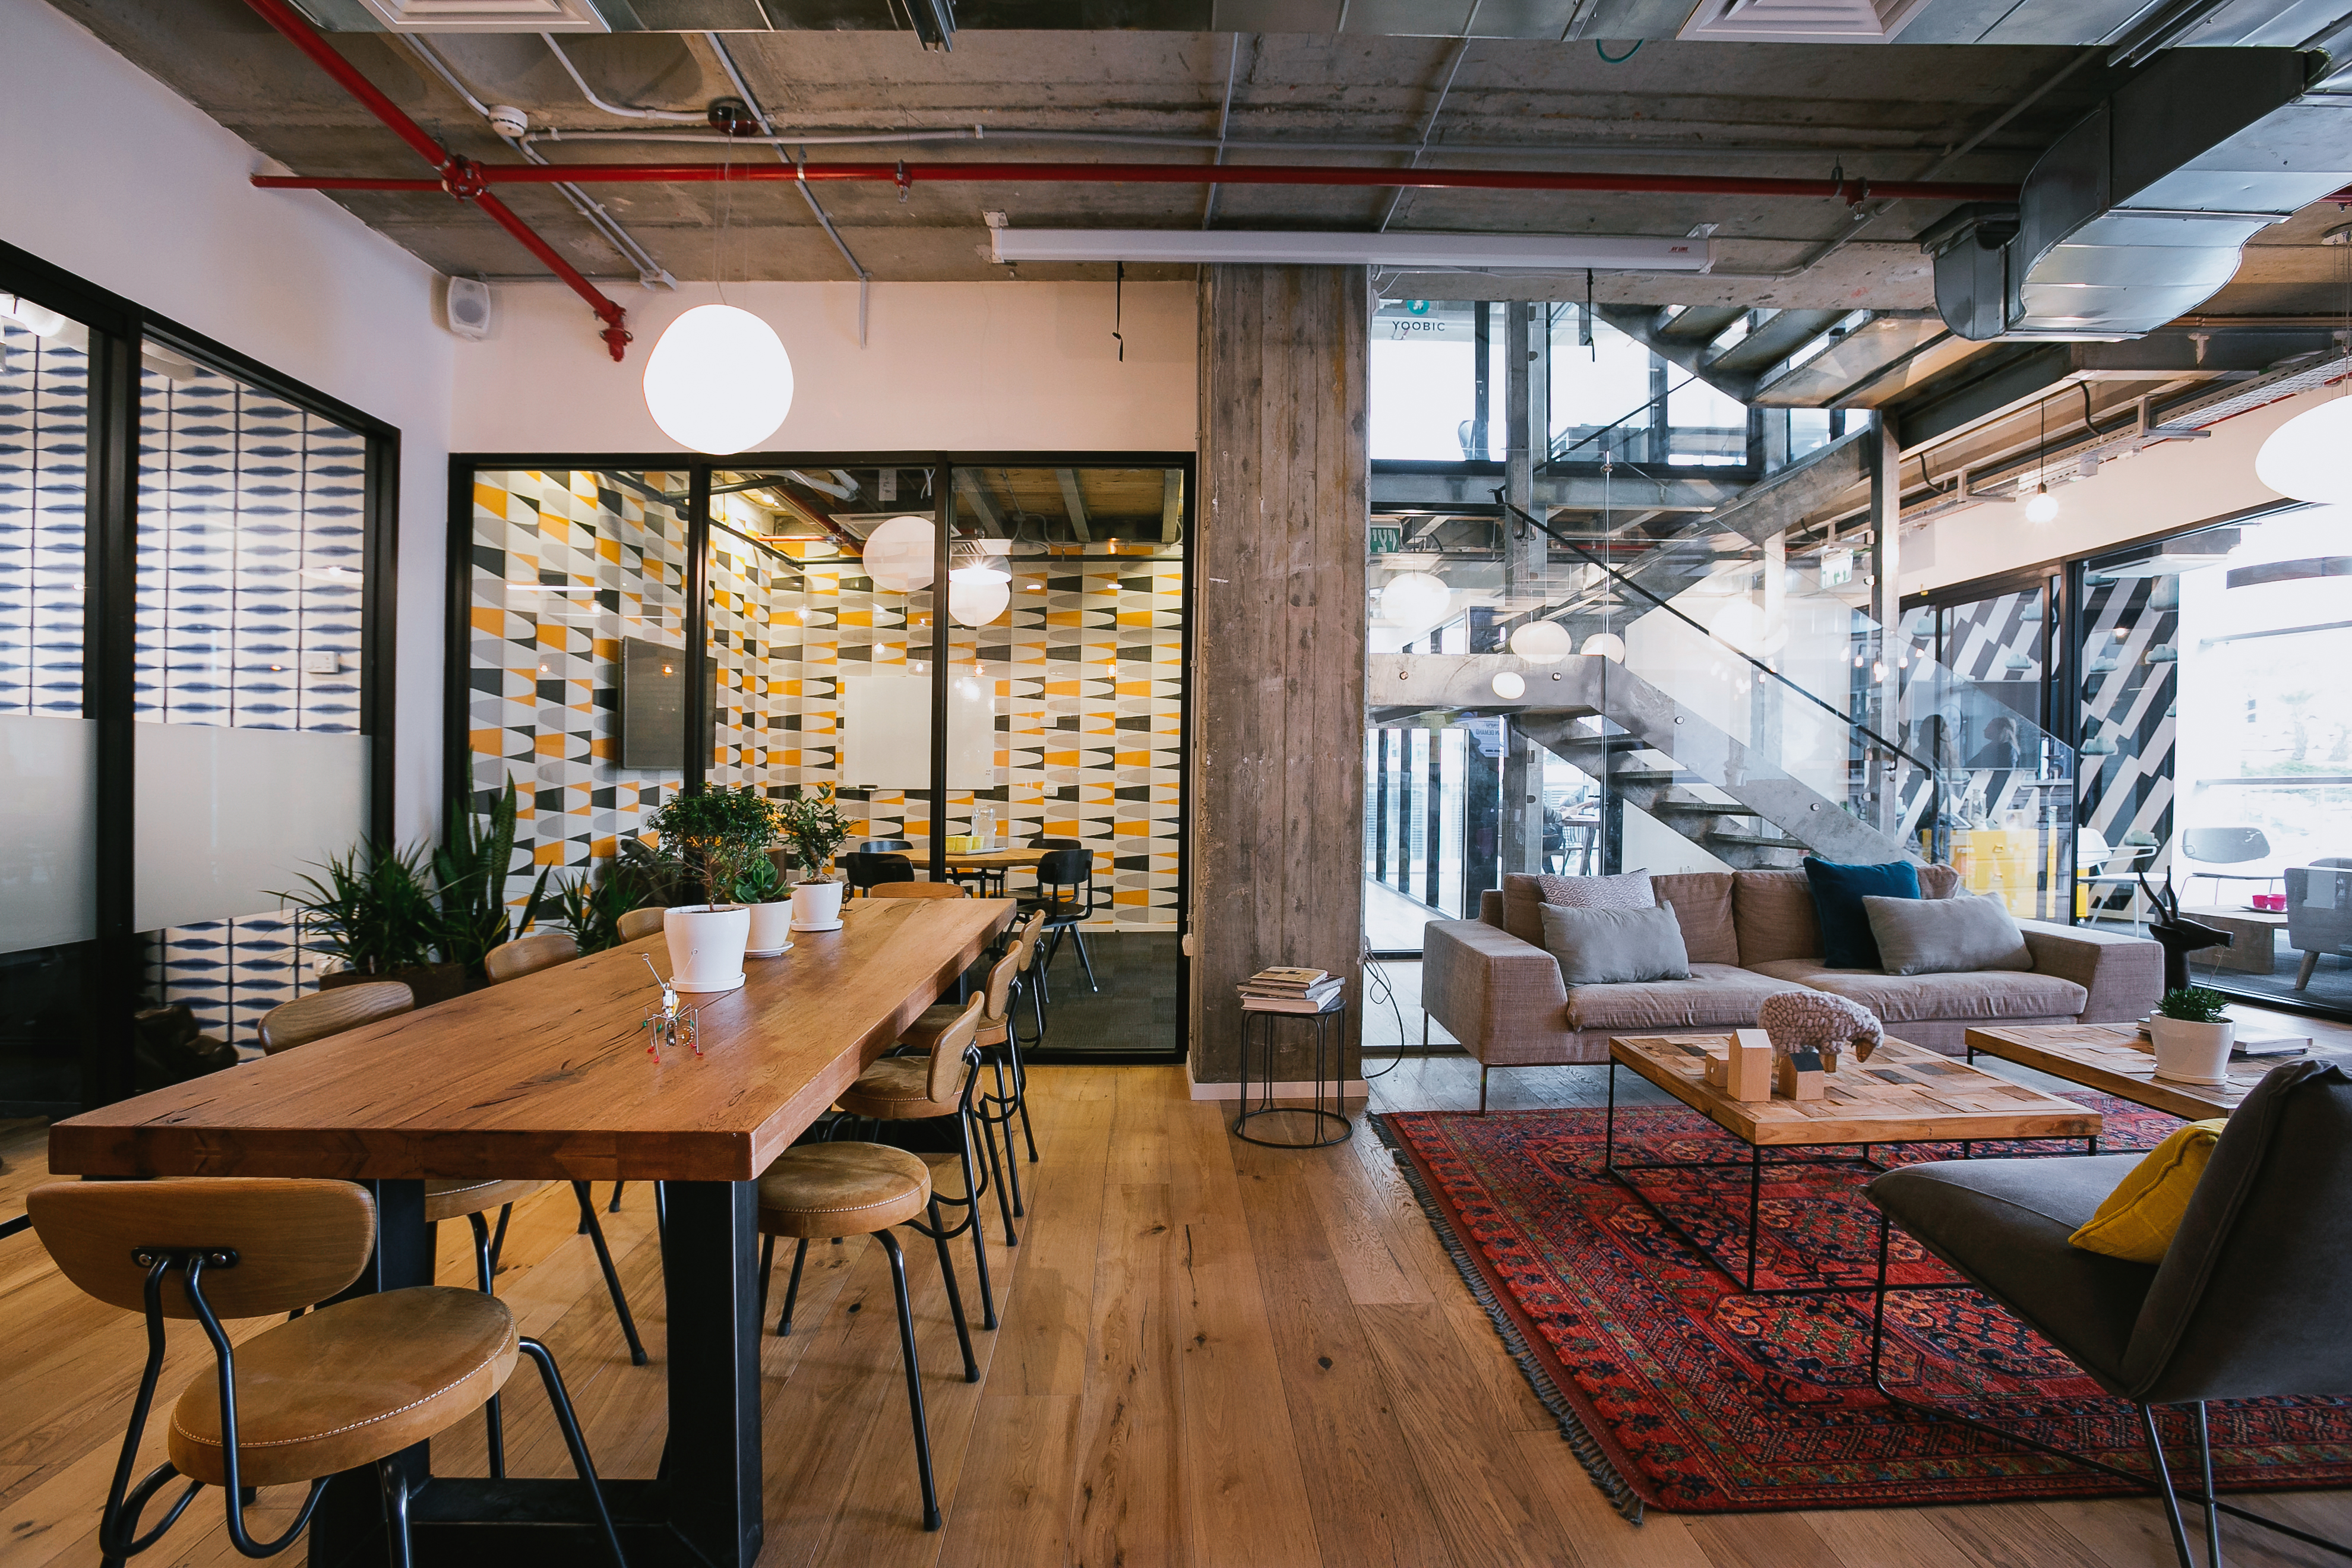 Design your own office space online trendy tekchi design for Design your own office